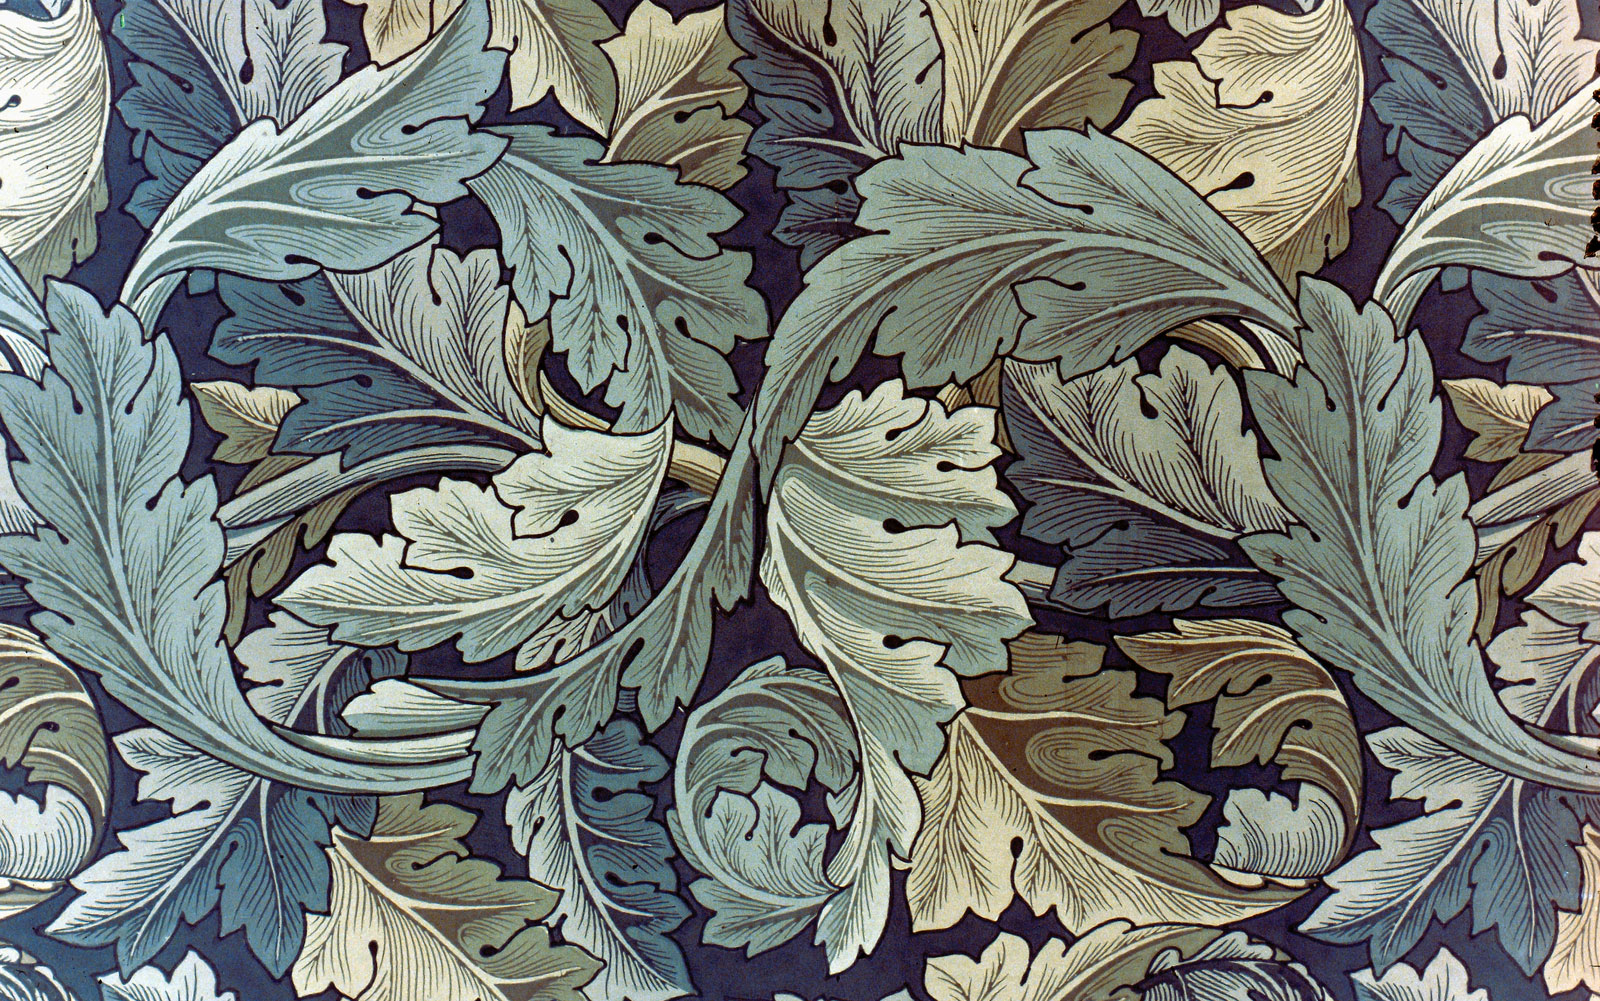 William morris seamsandstitches for Acanthus decoration